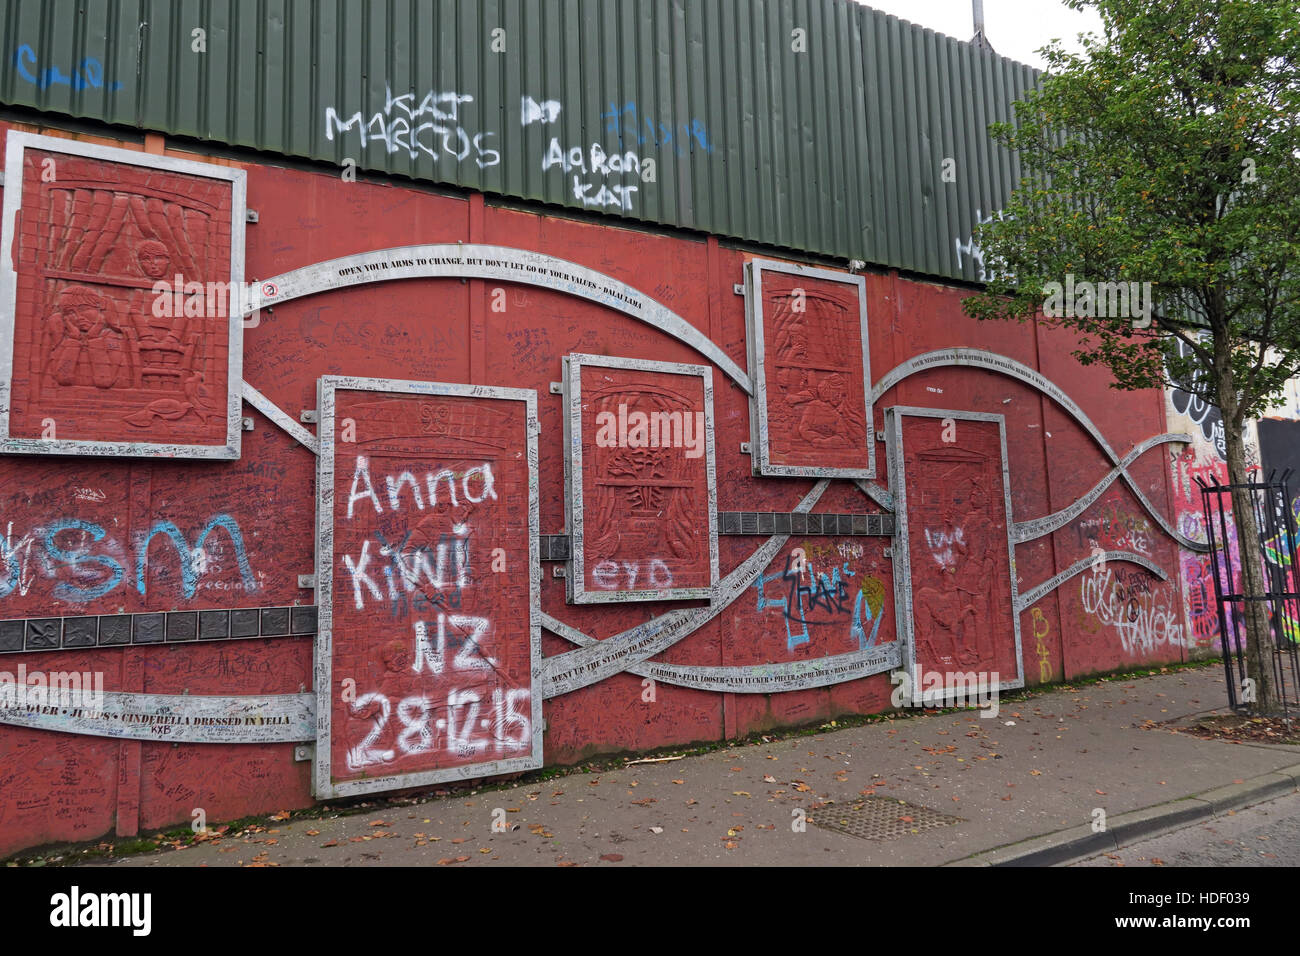 Open Your Arms To Change ... - Belfast International Peace Wall,Cupar way,West Belfast,NI,UK - Stock Image